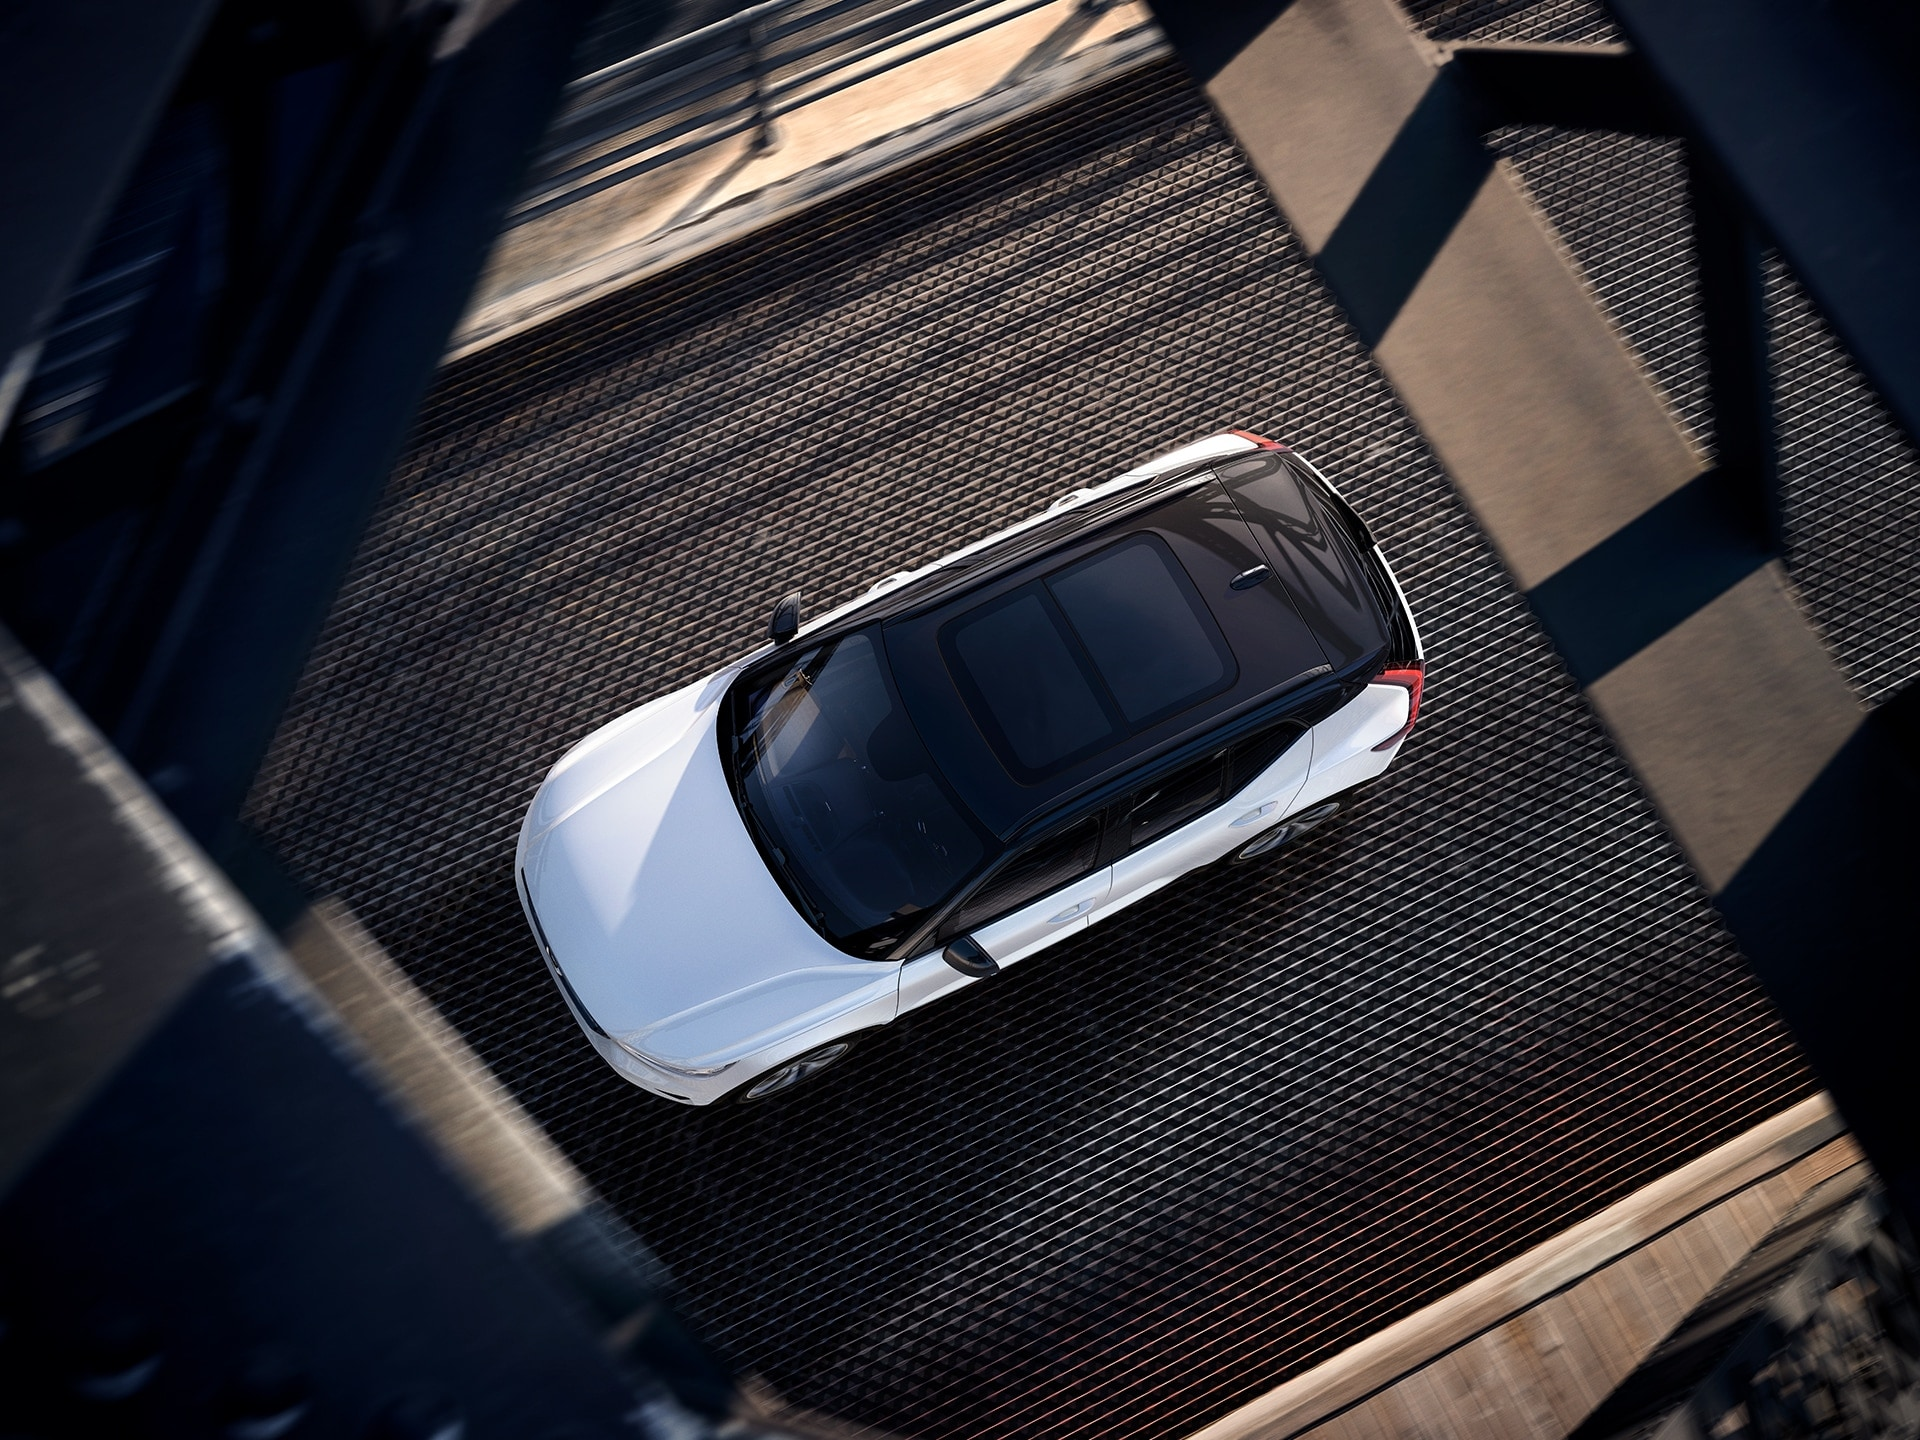 Open-and-tilt panoramic roof of a white XC40 Recharge seen from above.